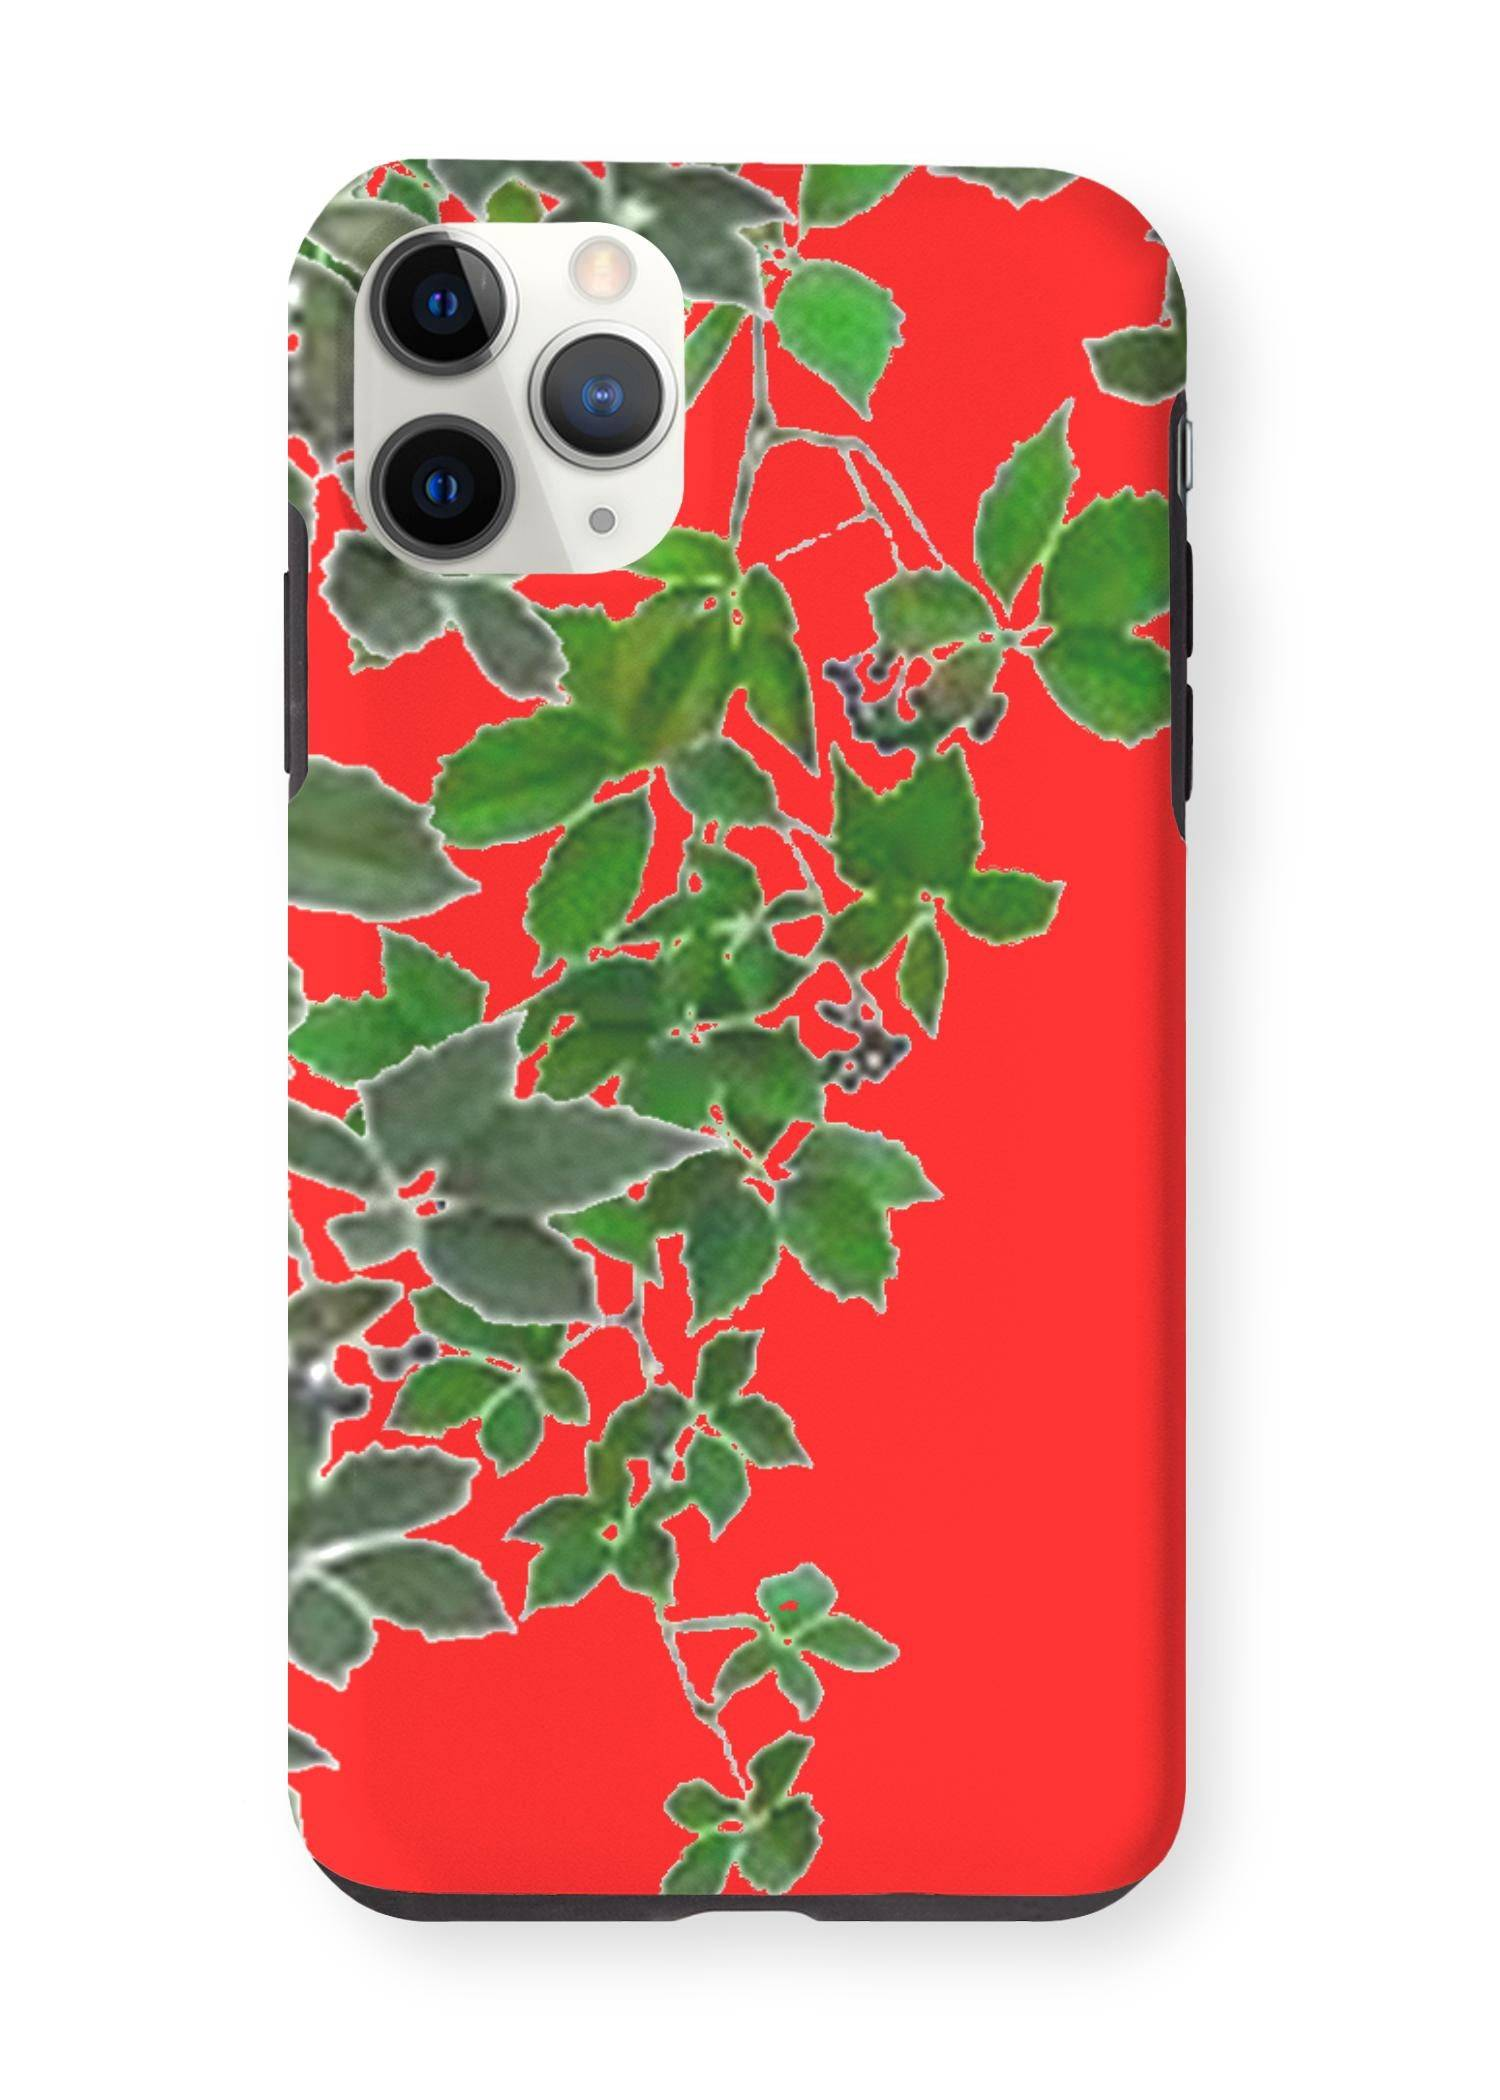 VIDA iPhone Case - Red Hanging Home Decor  2 by VIDA Original Artist  - Size: iPhone 11 Pro Max / Tough